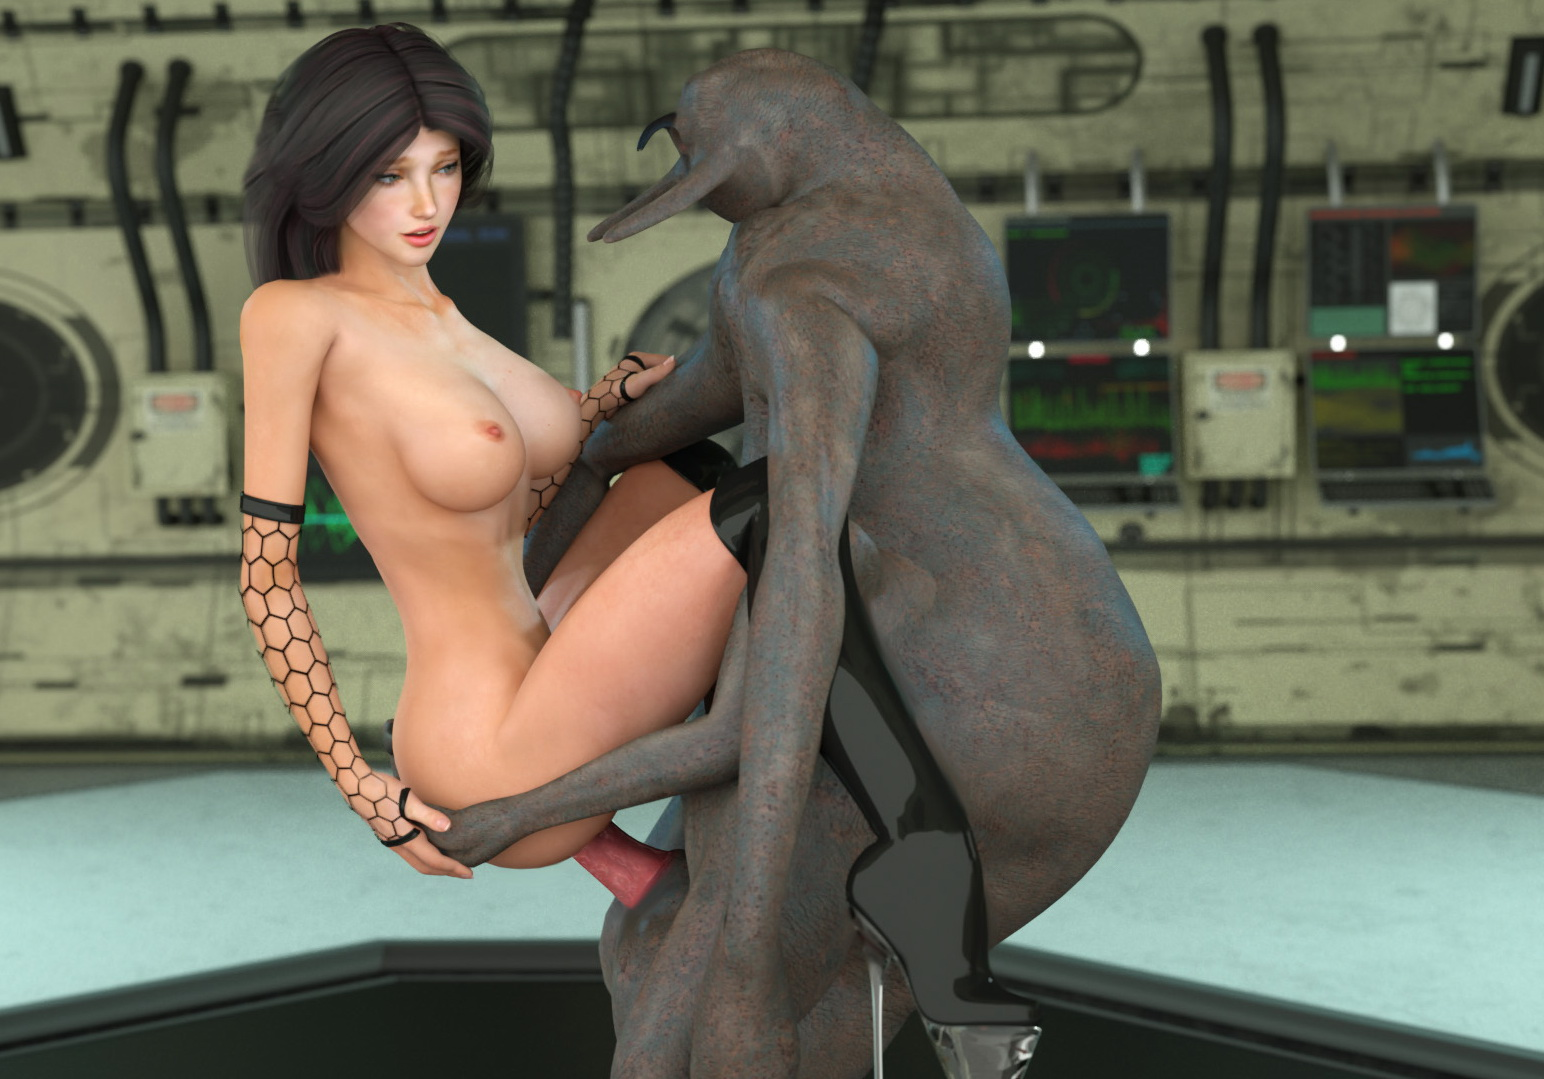 Daz 3d animation naked naked scene